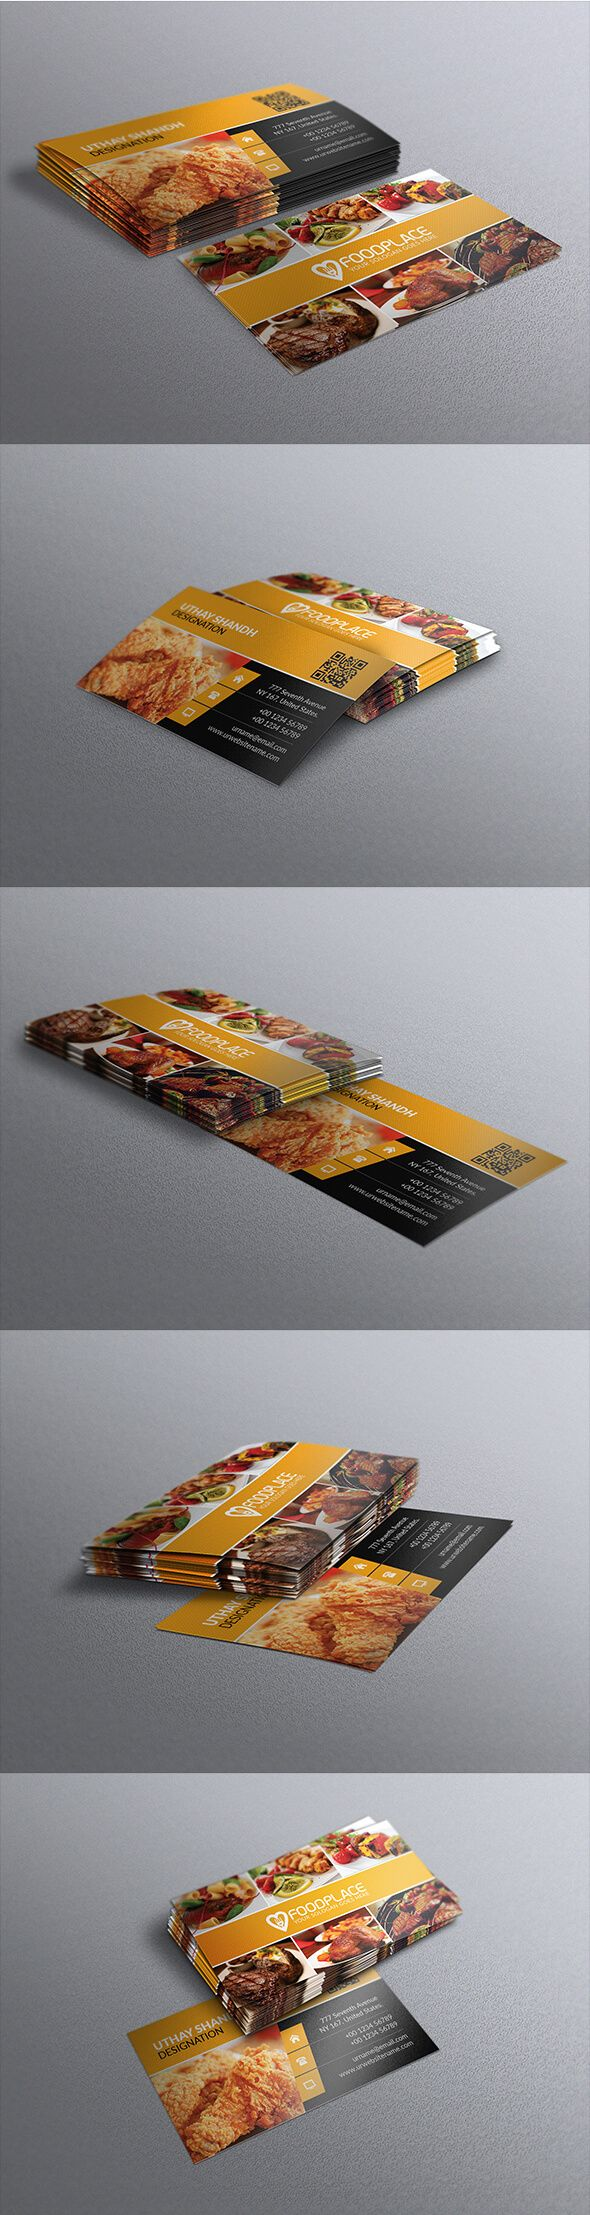 Free restaurant business card template download business cards free restaurant business card template download cheaphphosting Gallery